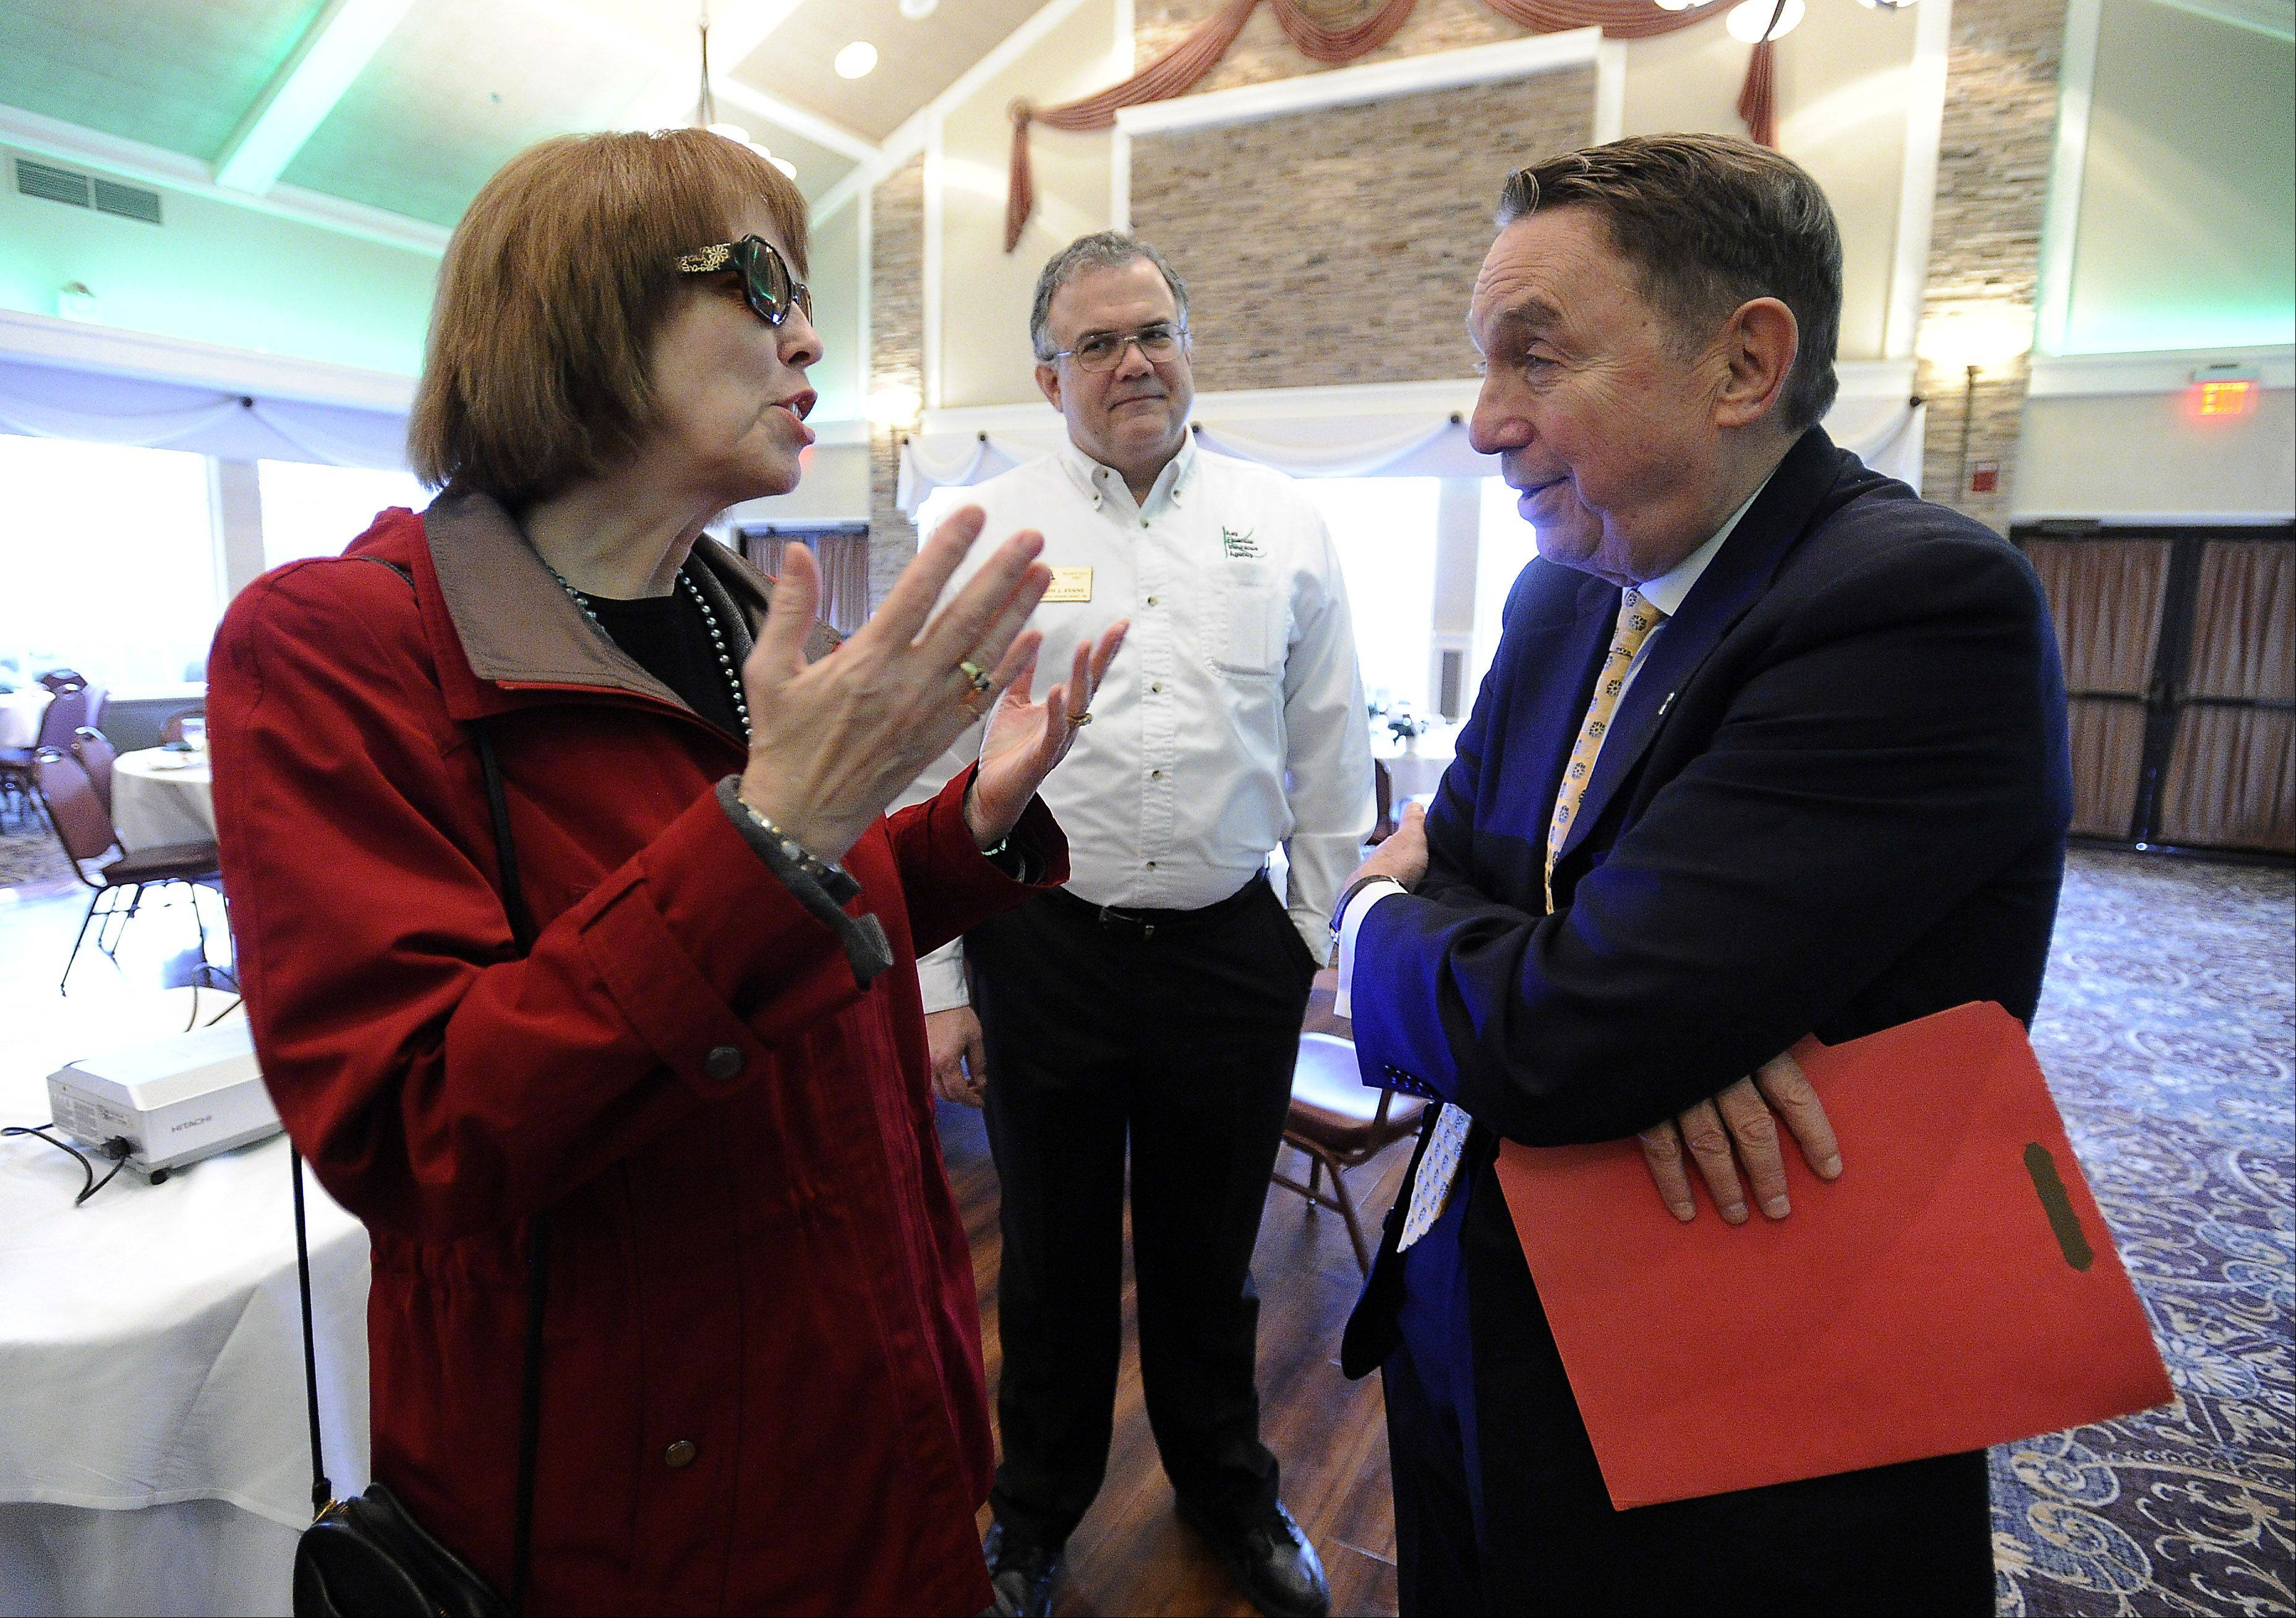 Schaumburg Township Supervisor Mary Wroblewski talks with Roosevelt University Professor Paul Green after he discussed the state of Illinois and national politics at the Schaumburg Business Association�s monthly breakfast meeting Tuesday.